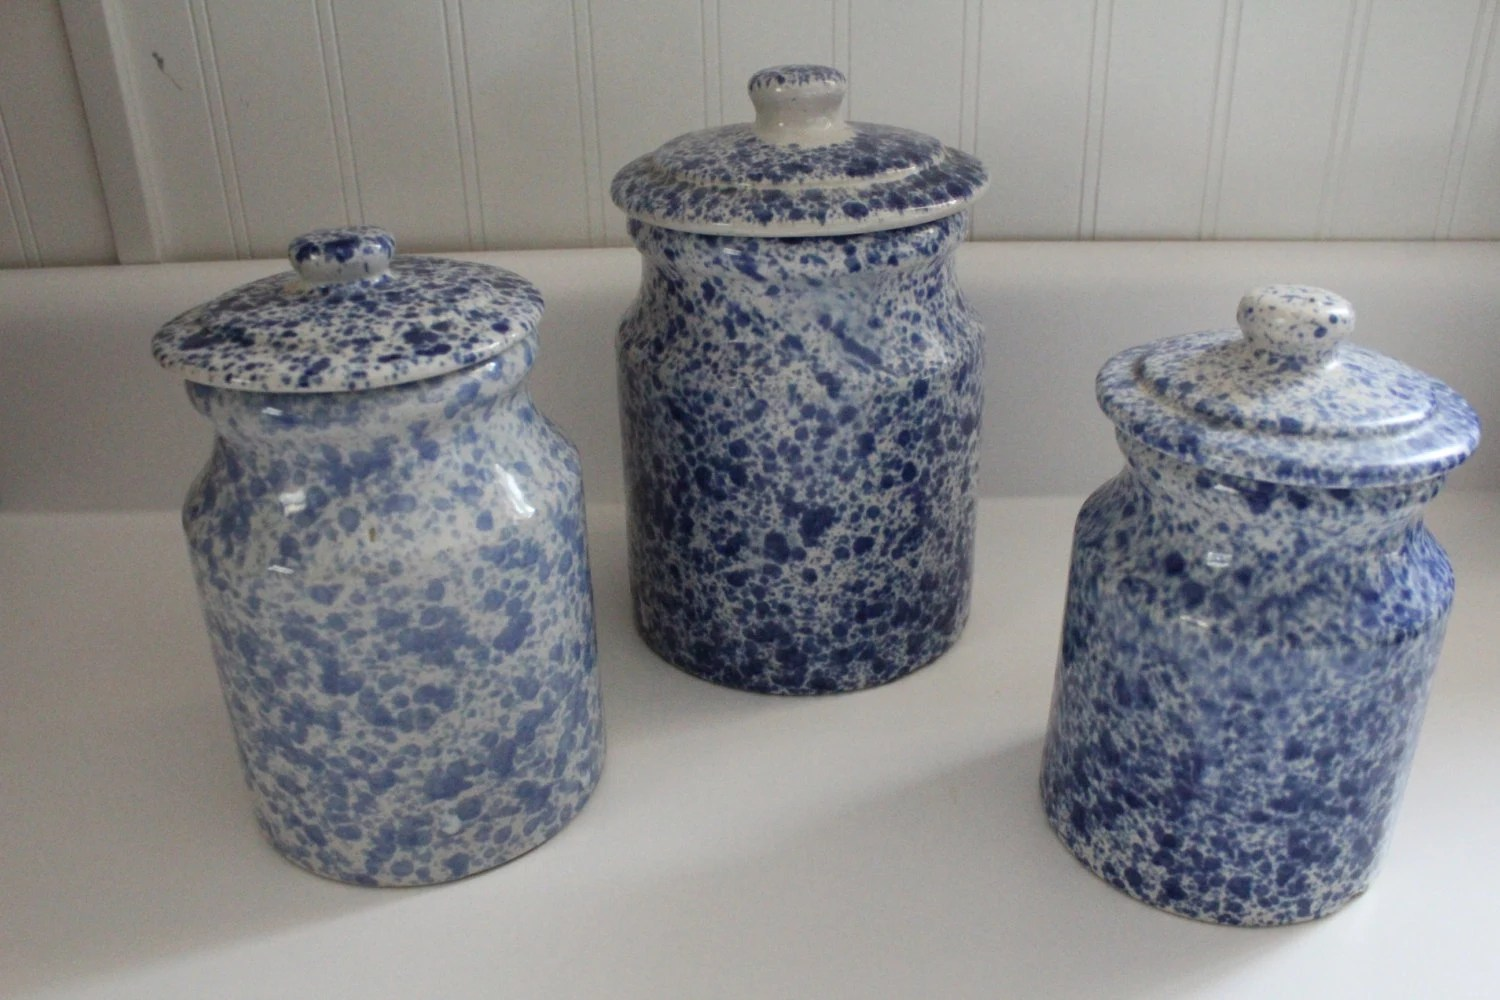 Ceramic Cookie Jar Sets Vintage Blue Speckled Ceramic Canister Set Cookie Jar